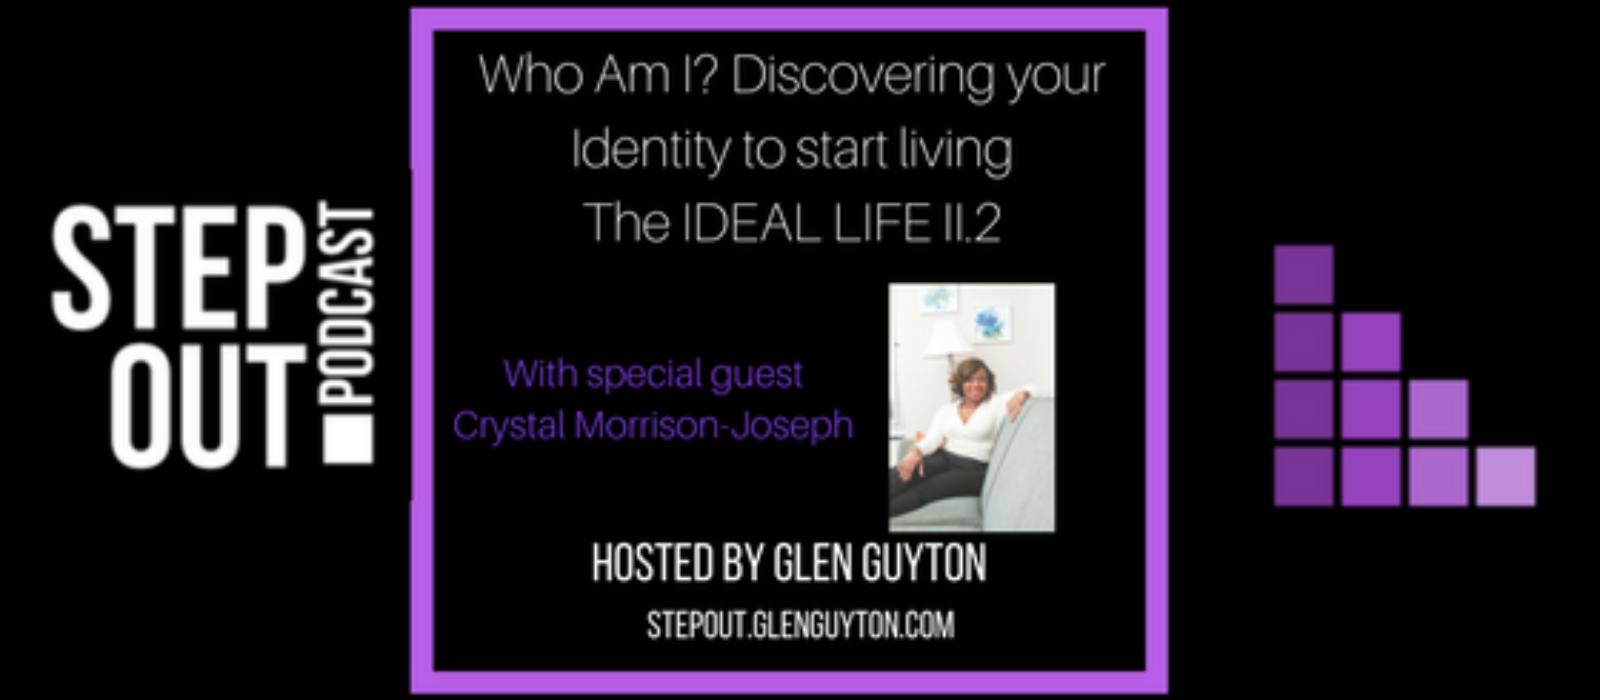 Who Am I? Discovering your Identity to start Living The IDEAL LIFE II.2